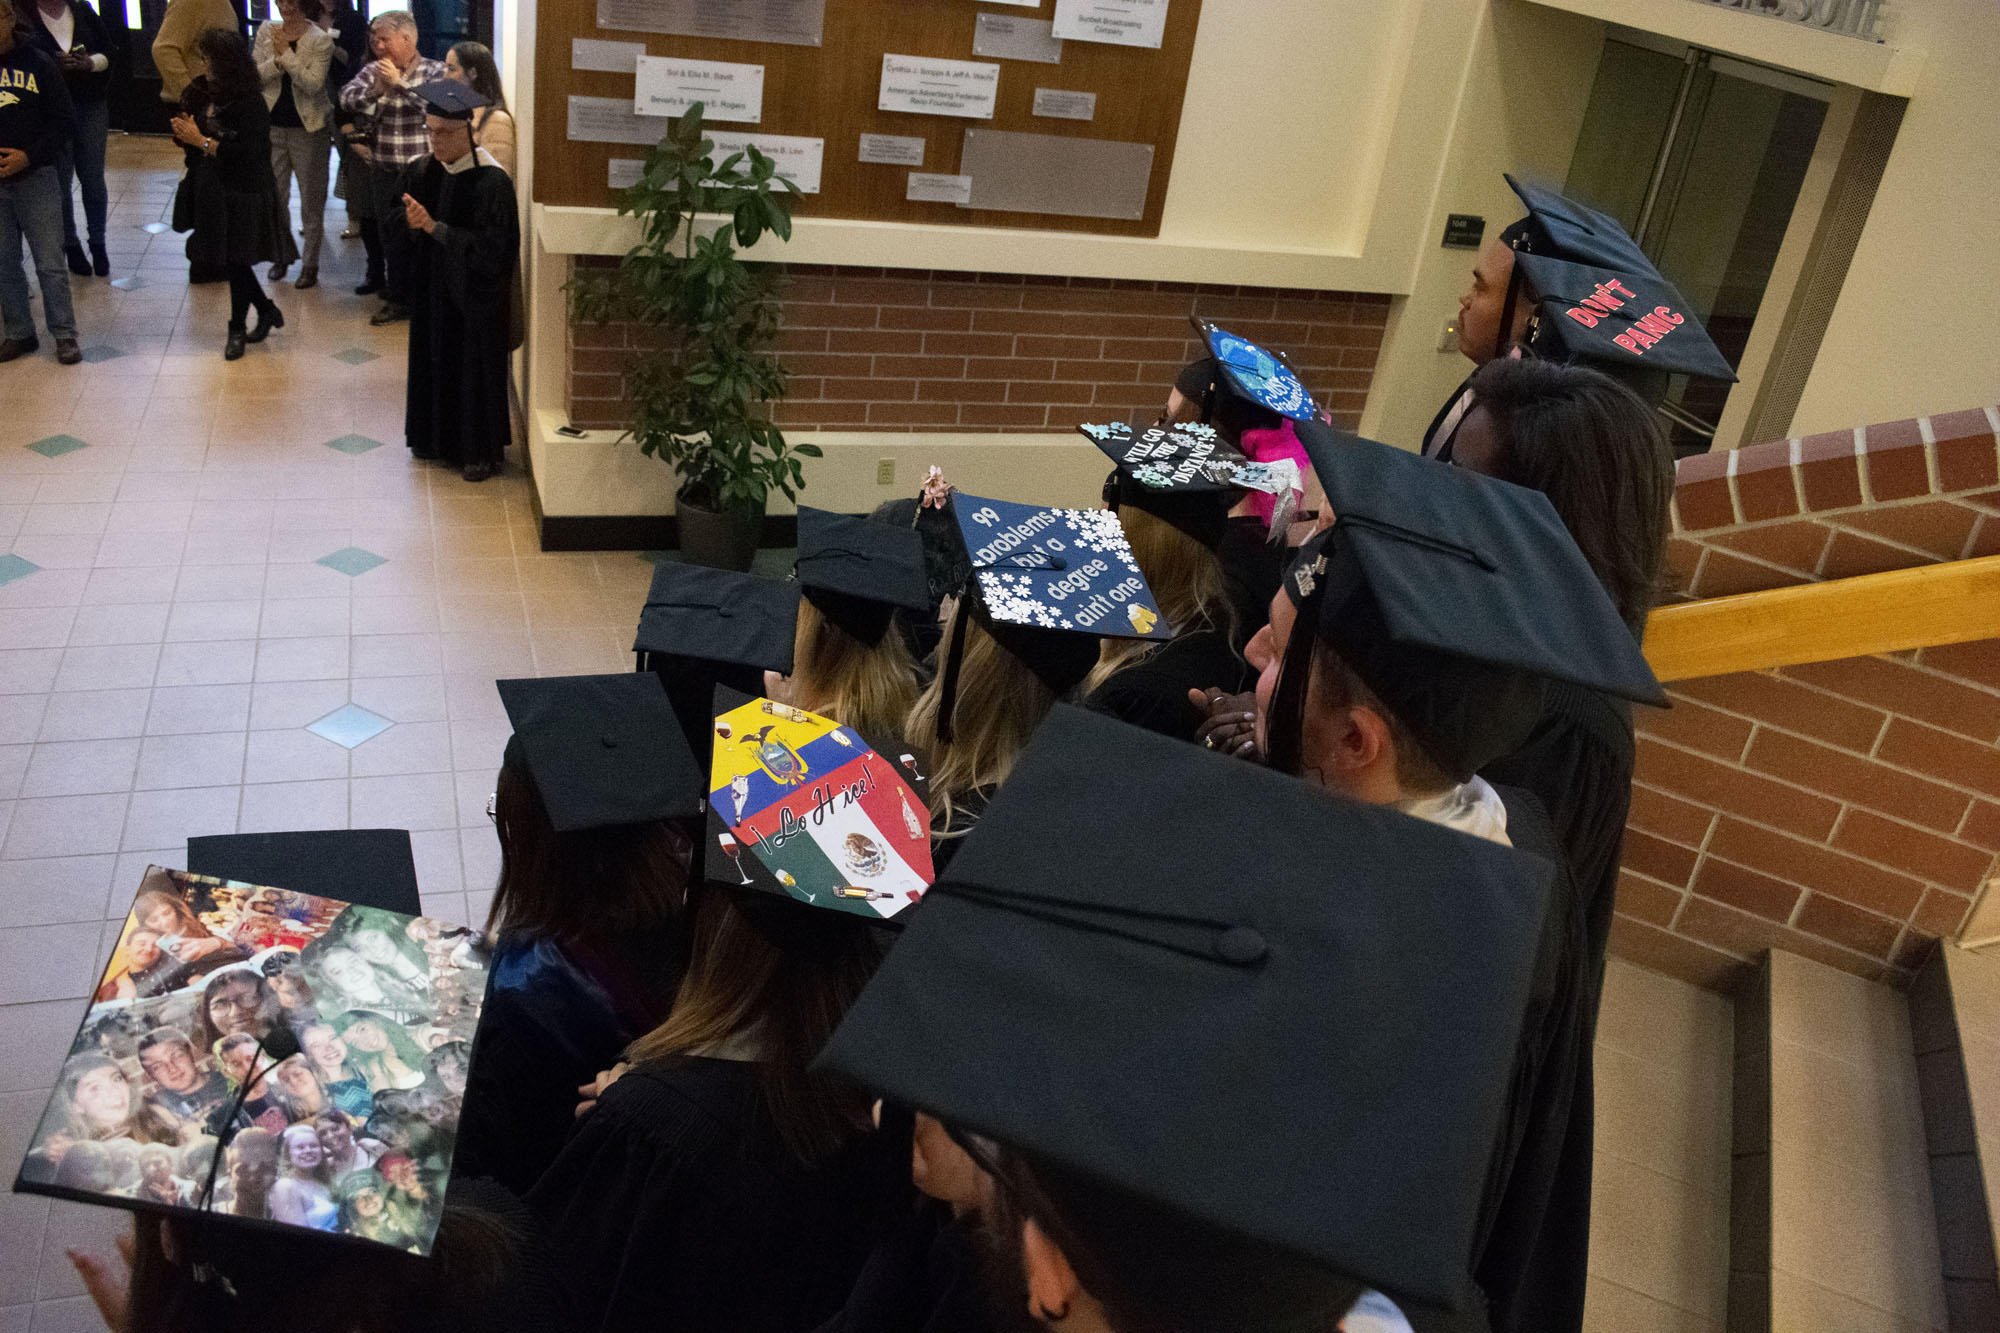 A view of students' graduation caps.